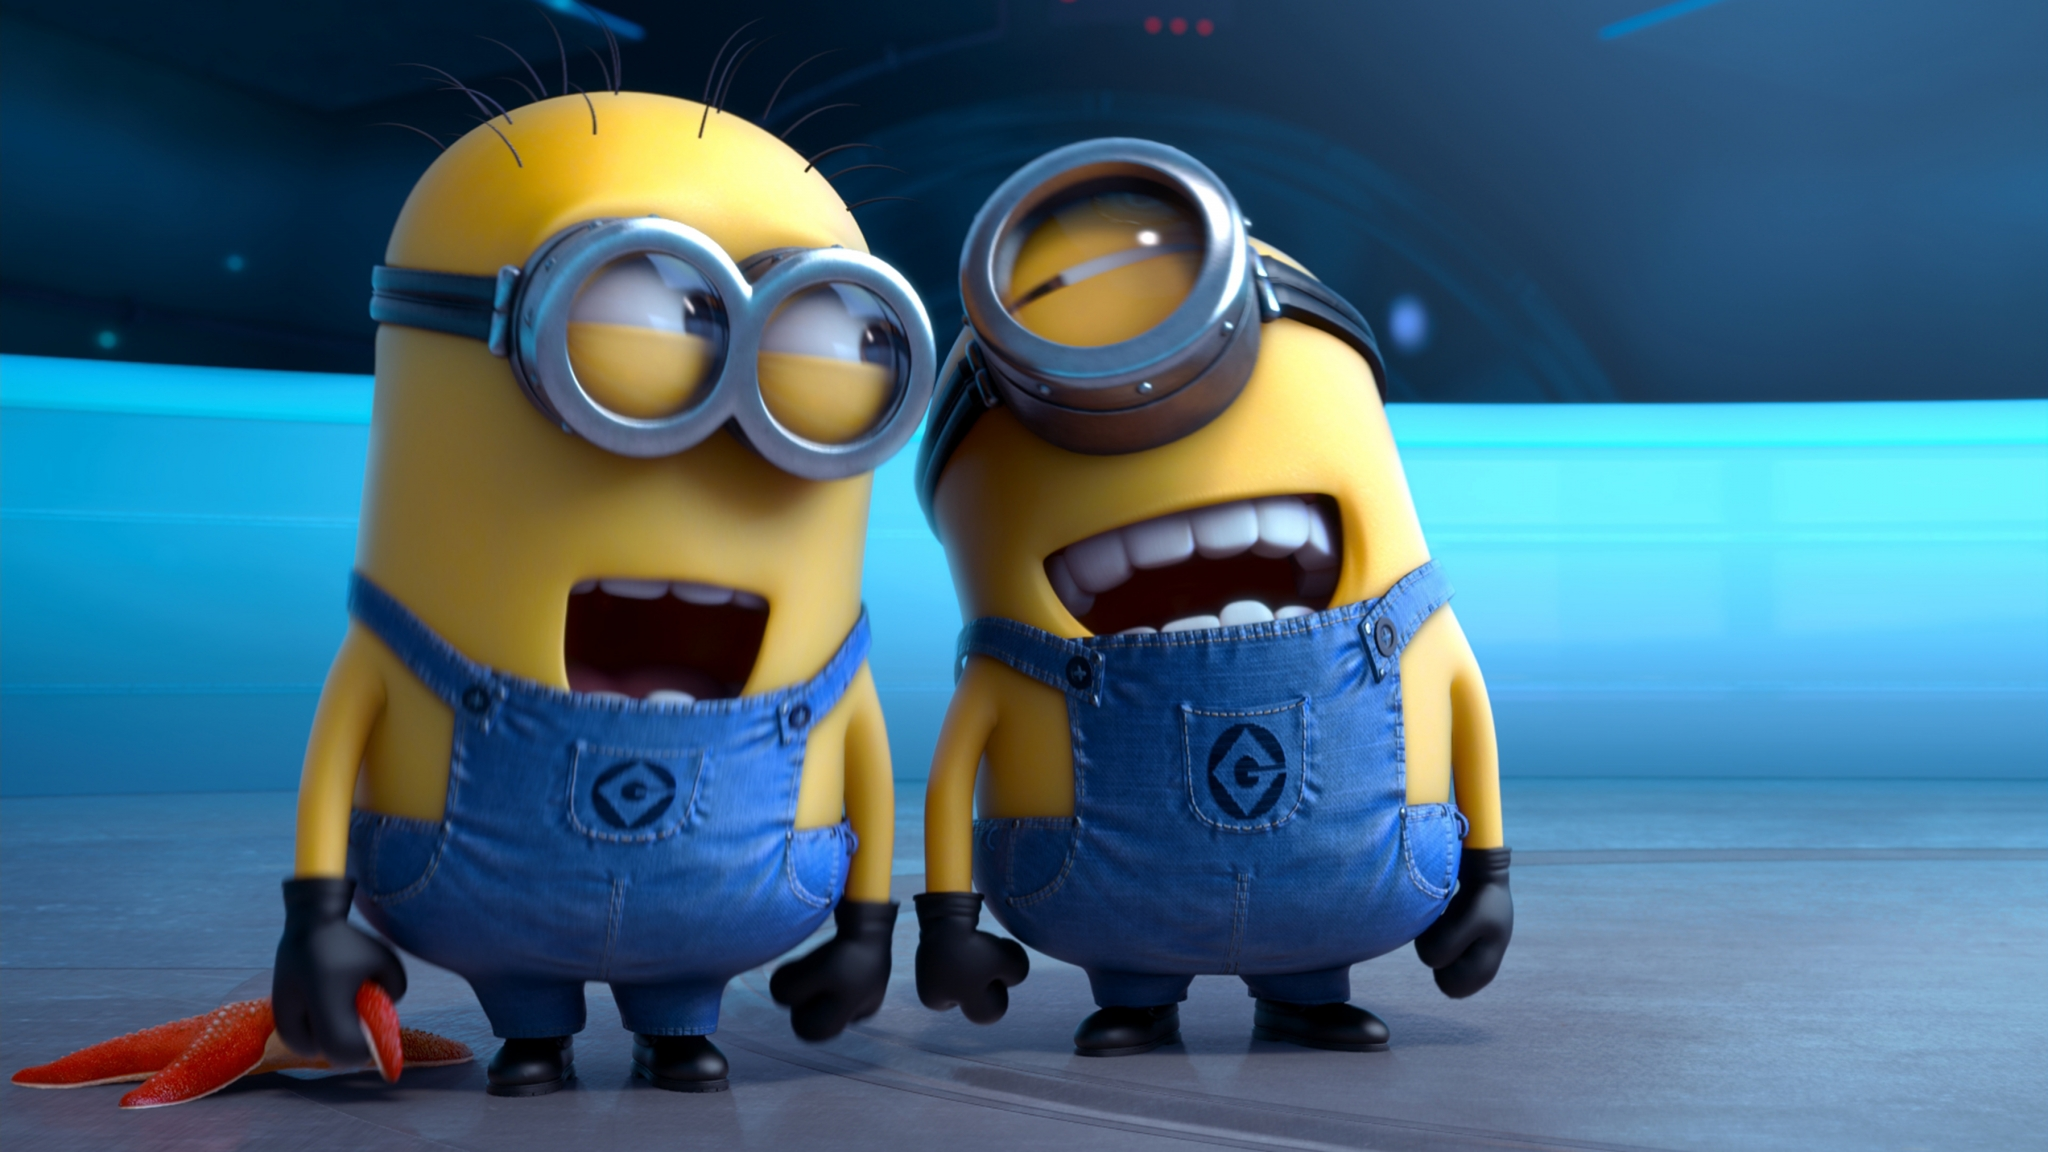 Free Download 2048x1152 Resolution of high quality despicable me HD Wallpaper